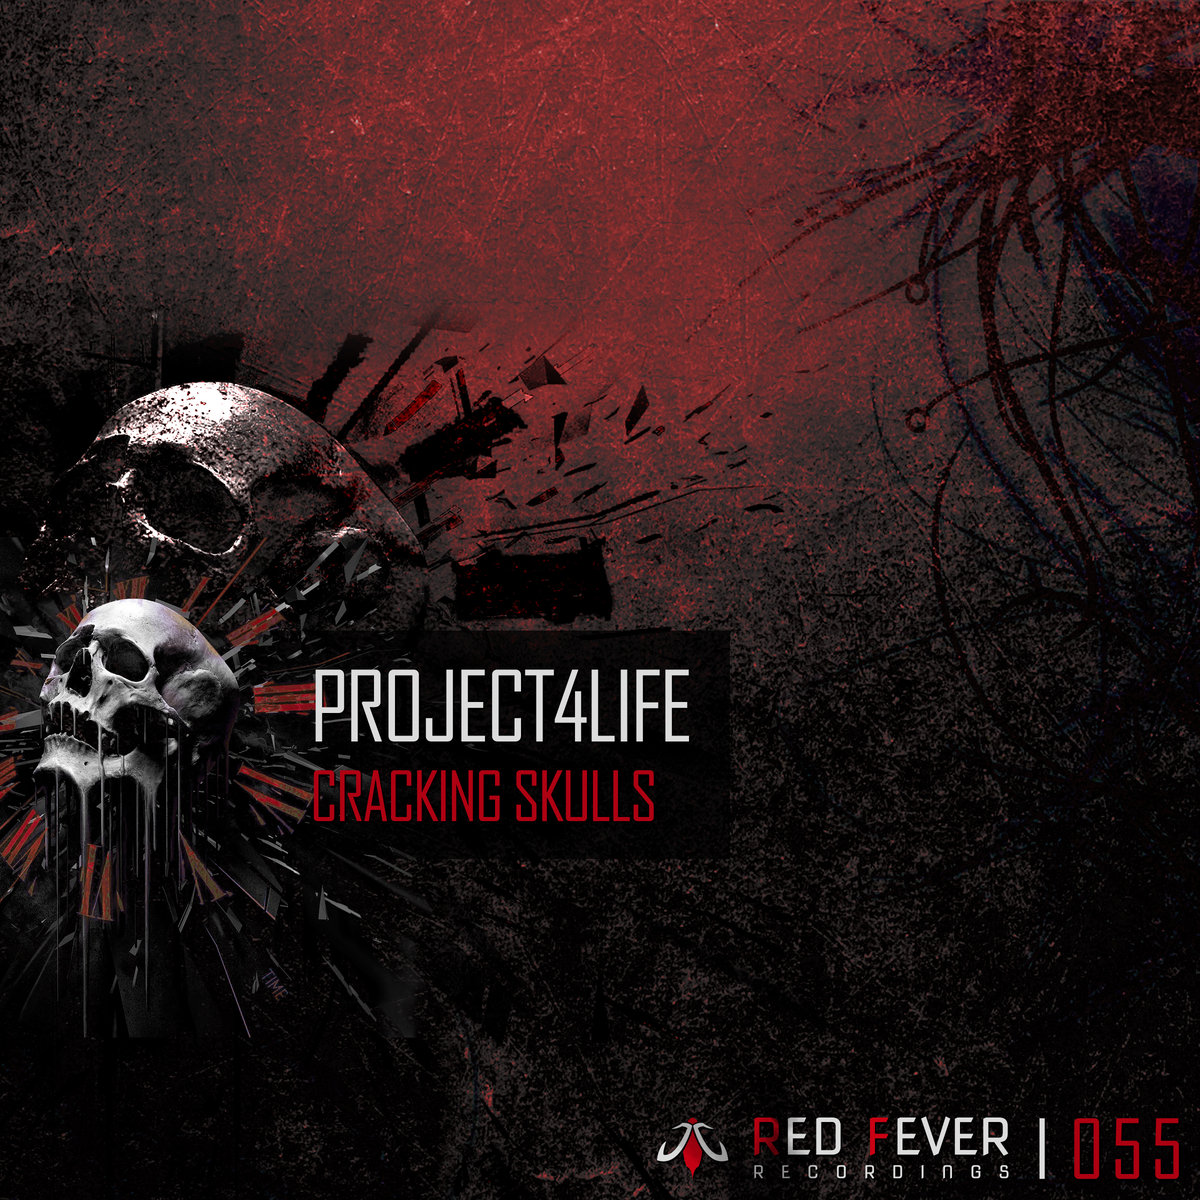 Project4life - Cracking Skulls